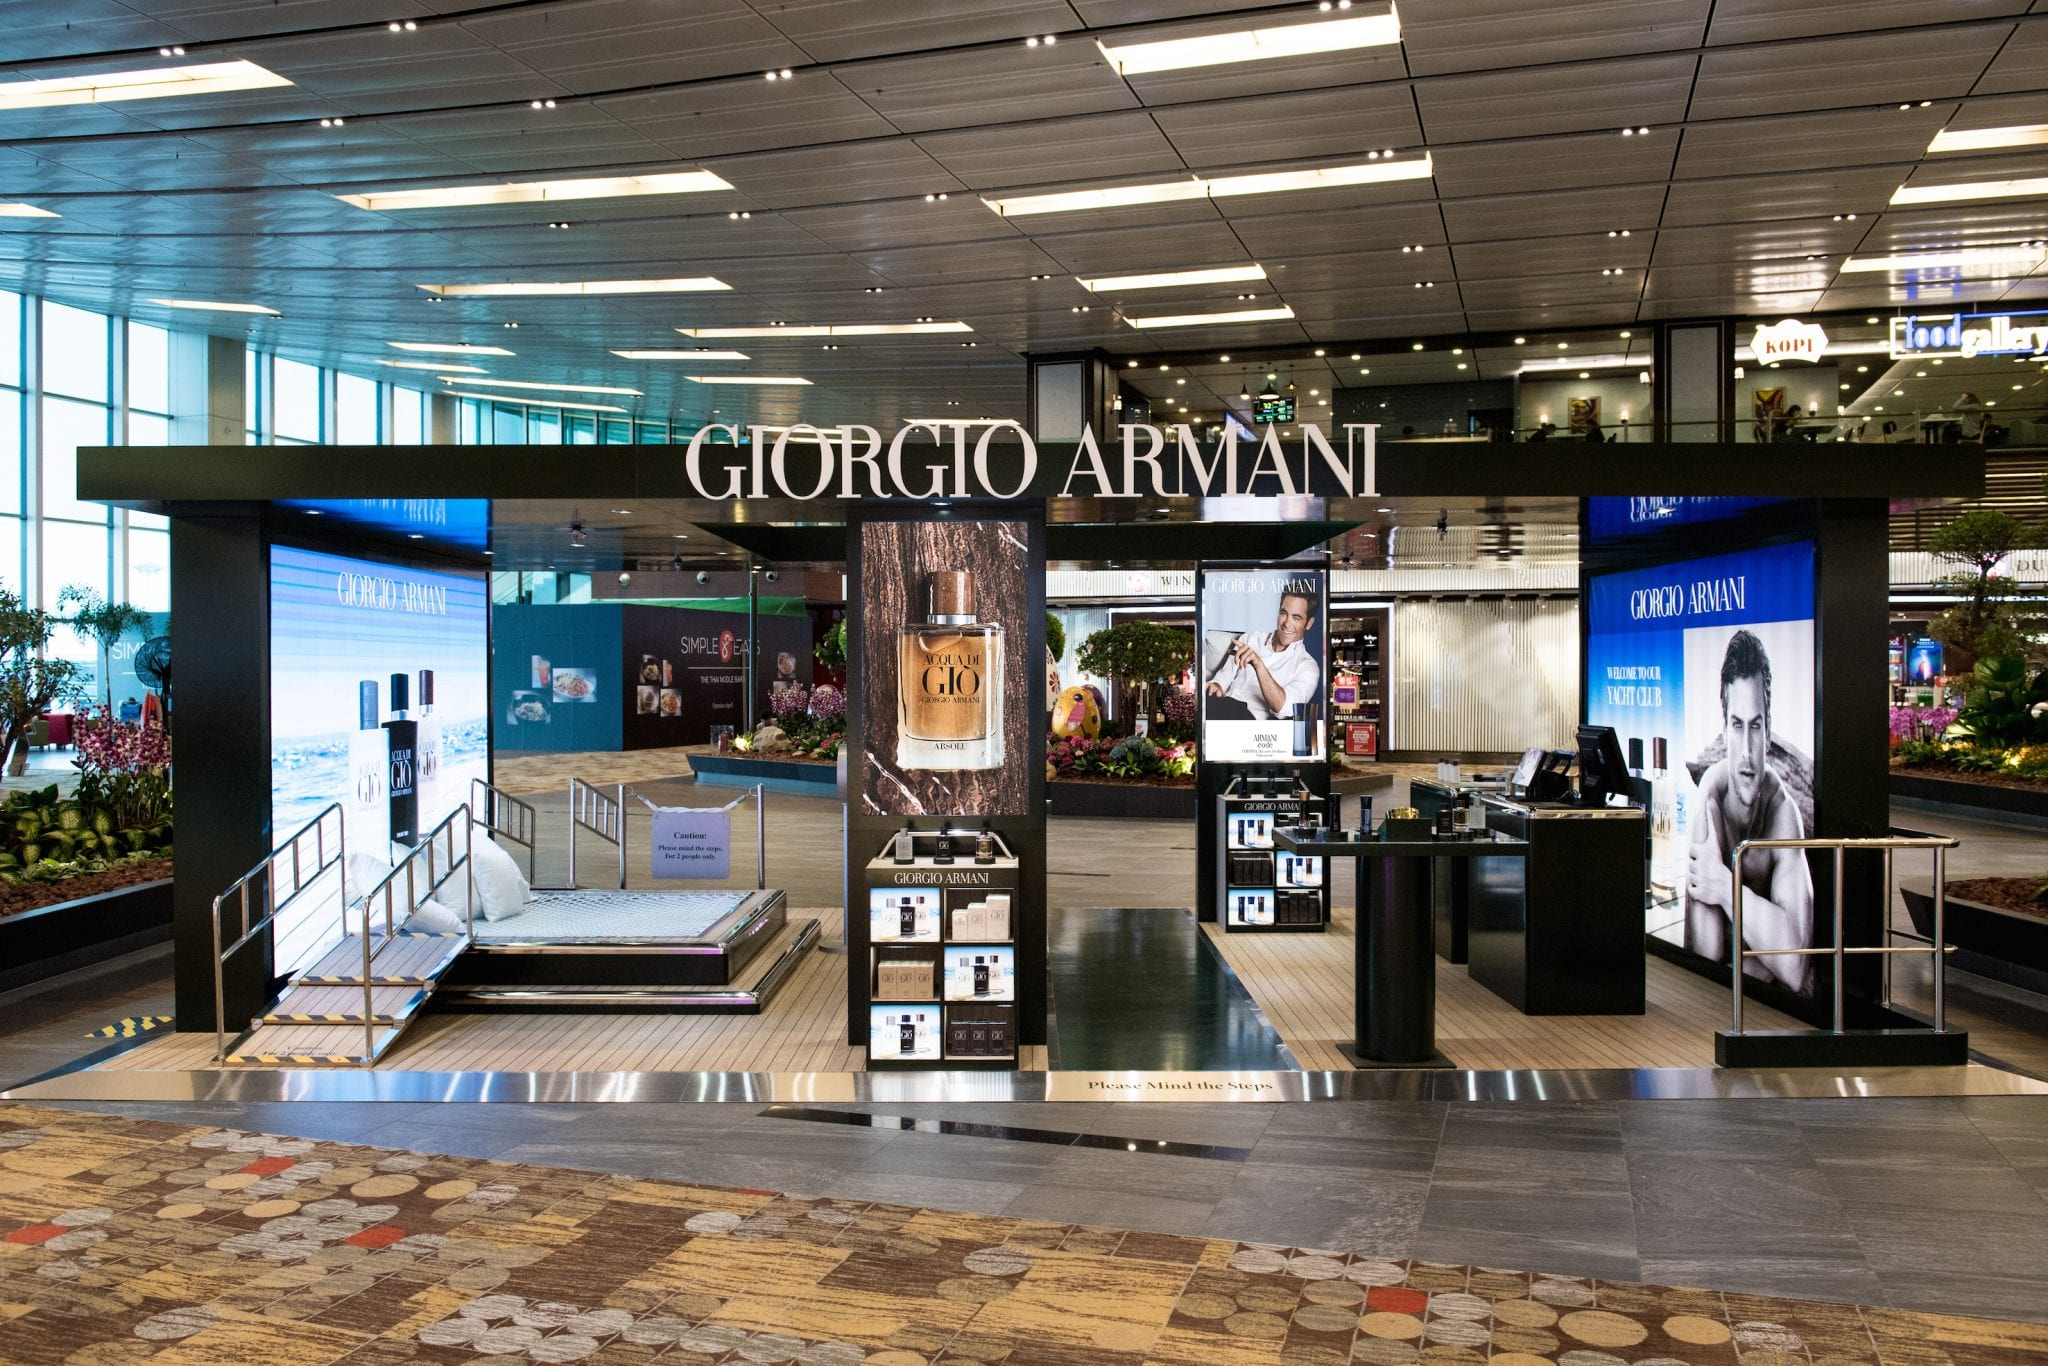 Armani perfume, including Acqua di Gio, being sold at Singapore Changi Airport